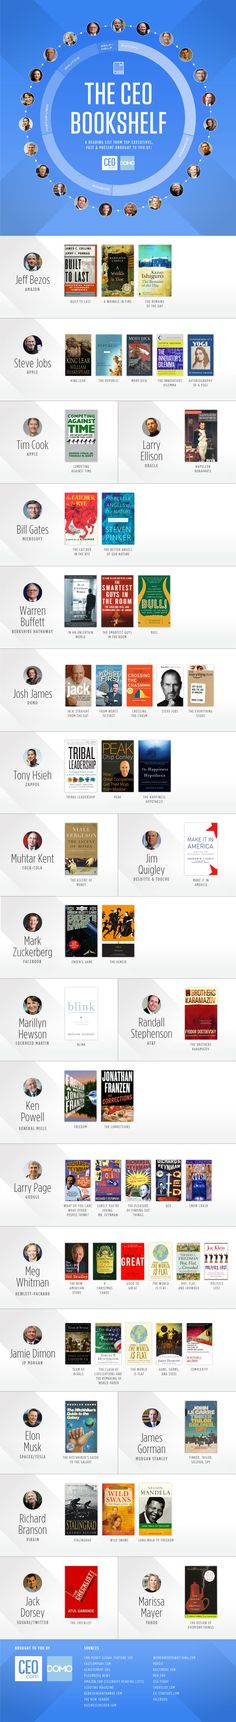 11.5.14_ceo-bookshelf_infographic